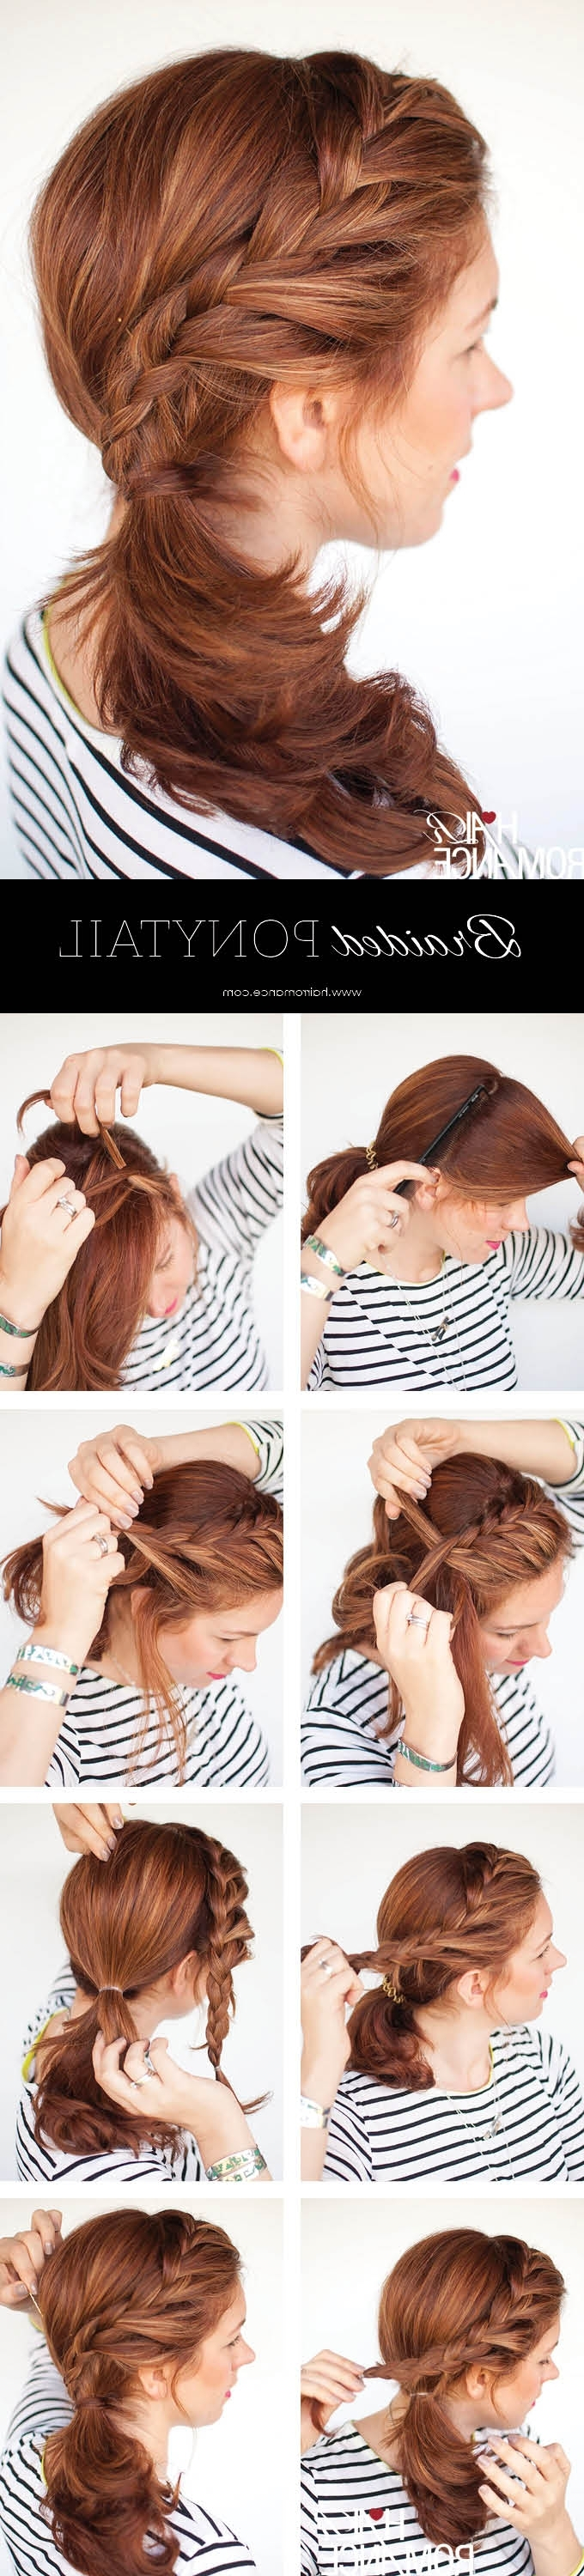 Weekend Style – Braided Ponytail Tutorial – Hair Romance With Regard To Current Side Ponytail Braided Hairstyles (View 12 of 15)